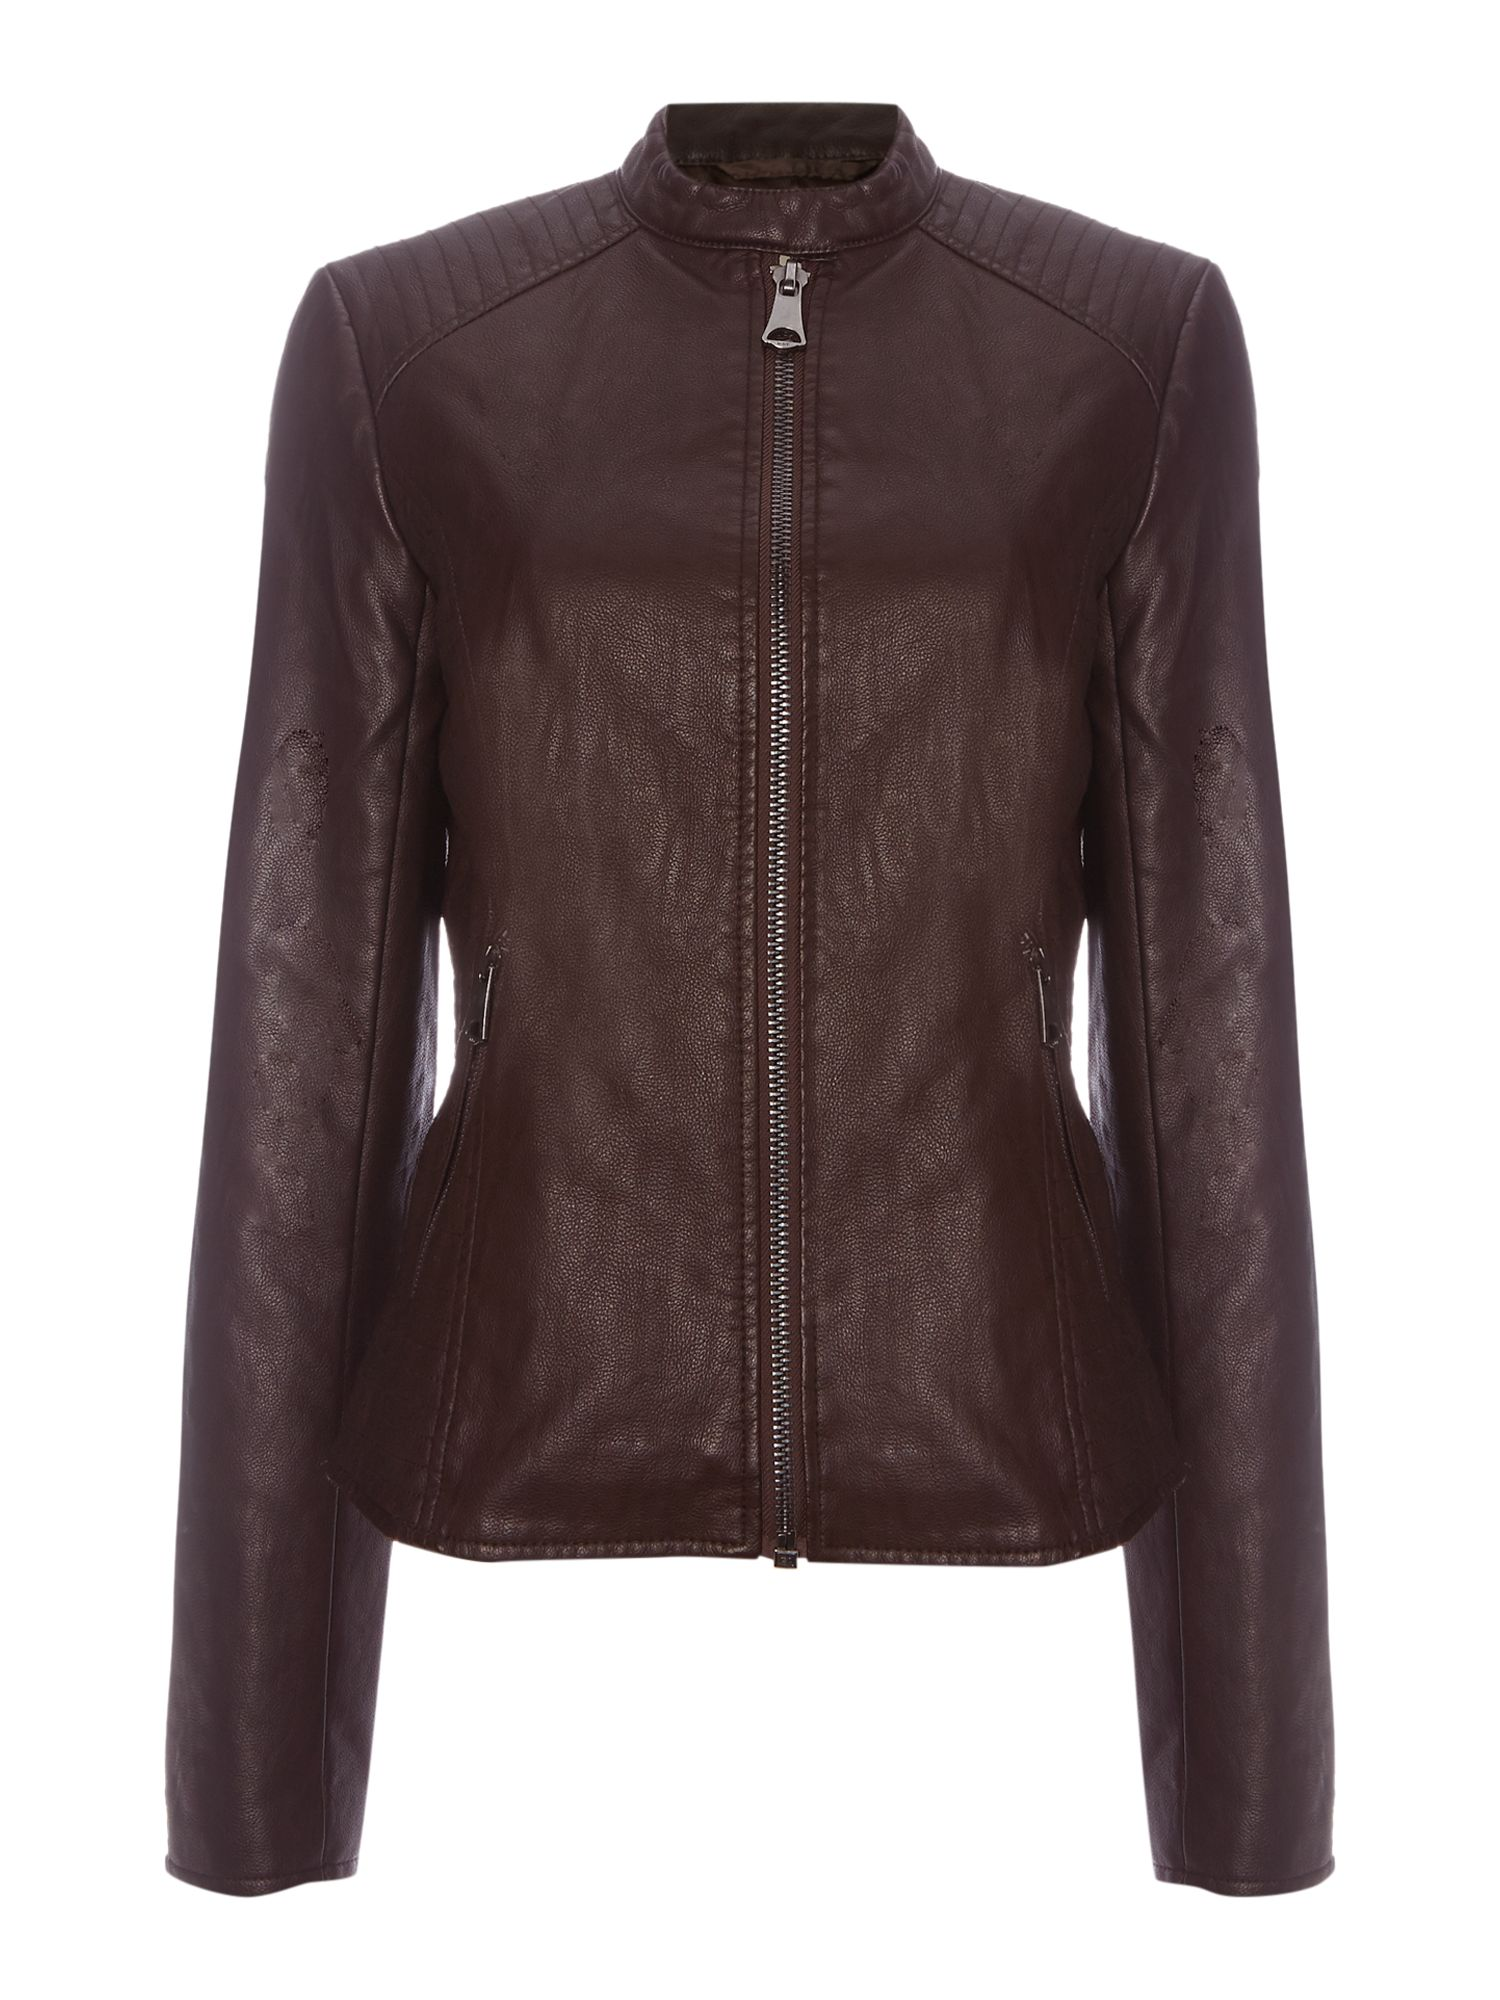 Andrew Marc Pebbled PU Biker Jacket, Dark Red